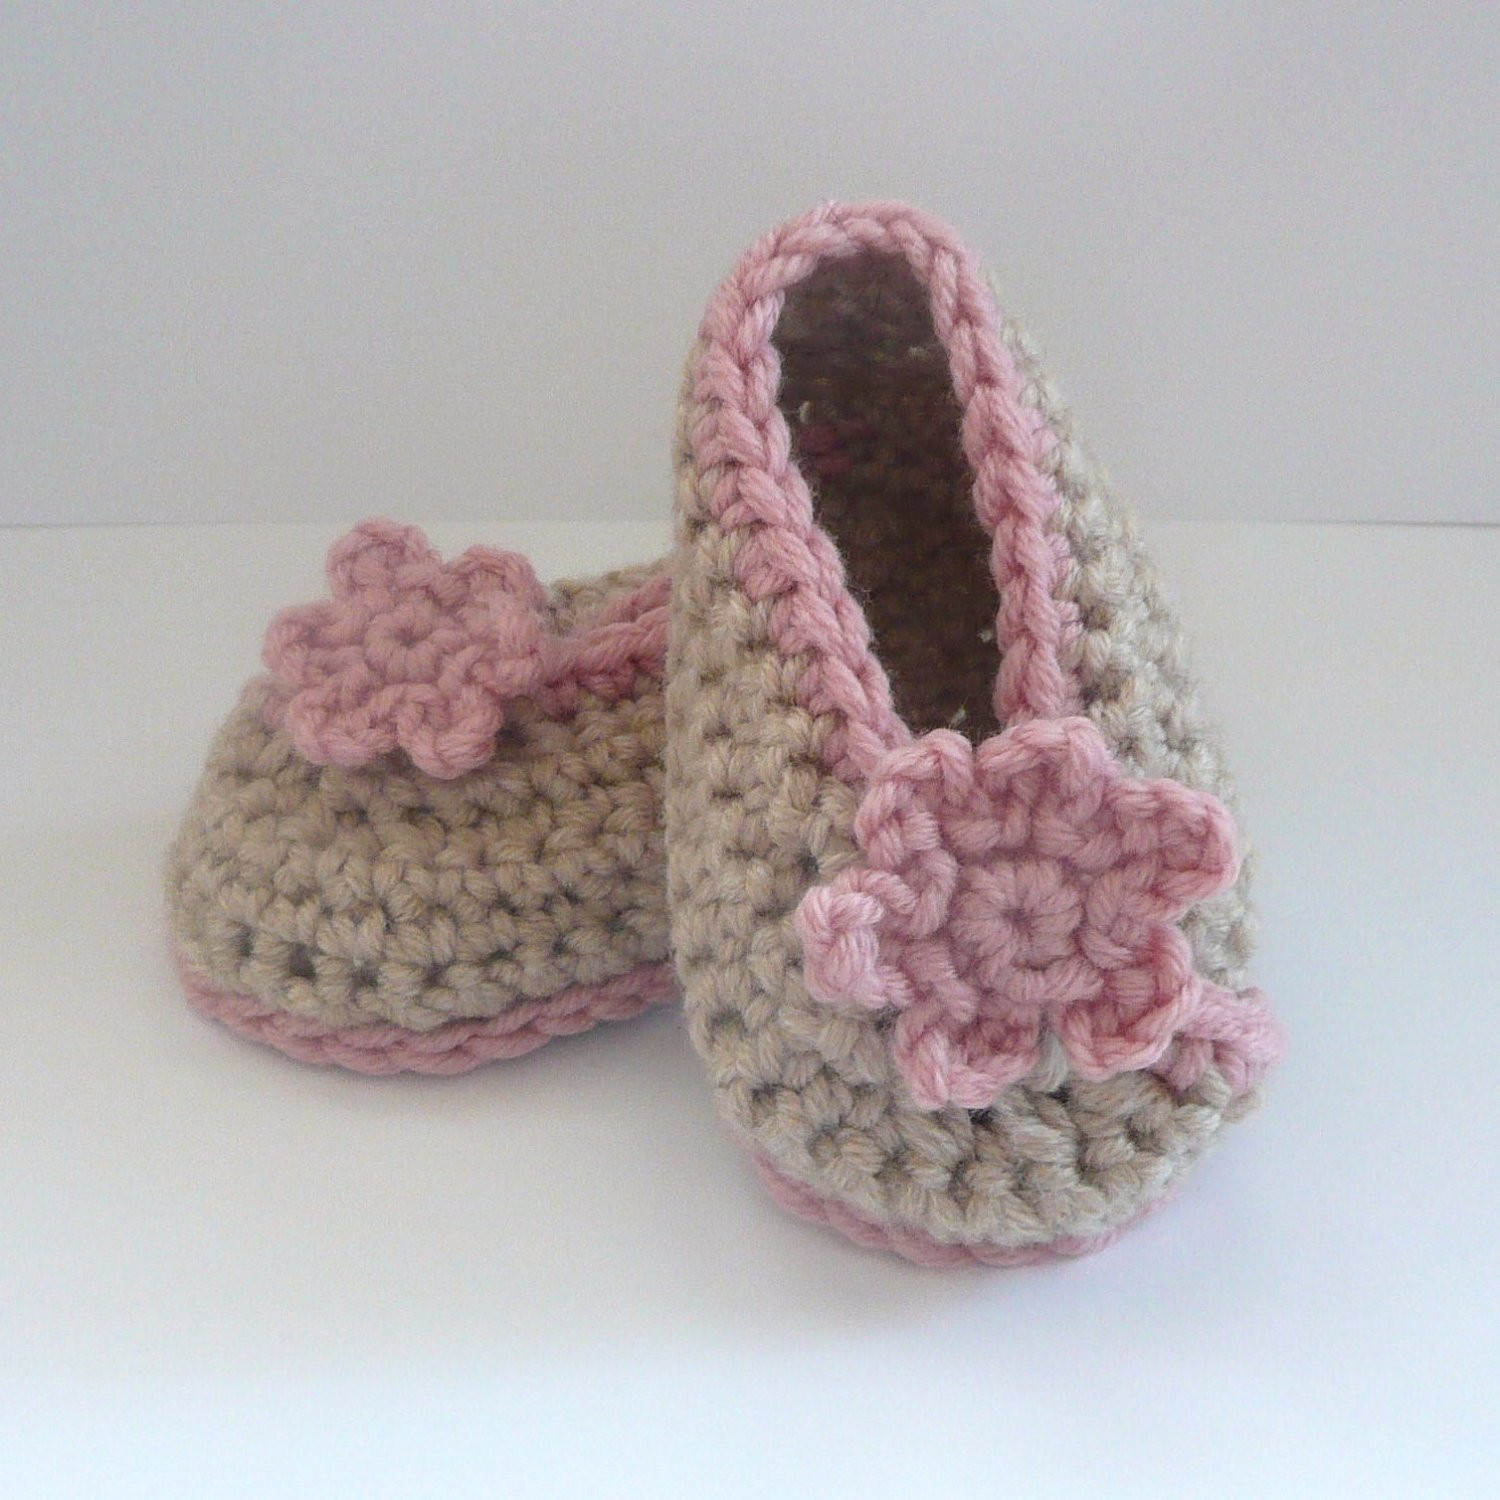 Easy Baby Booties Crochet Pattern Unique Crochet Pattern Baby Booties Crossover Baby Shoes Instant Of Innovative 47 Ideas Easy Baby Booties Crochet Pattern